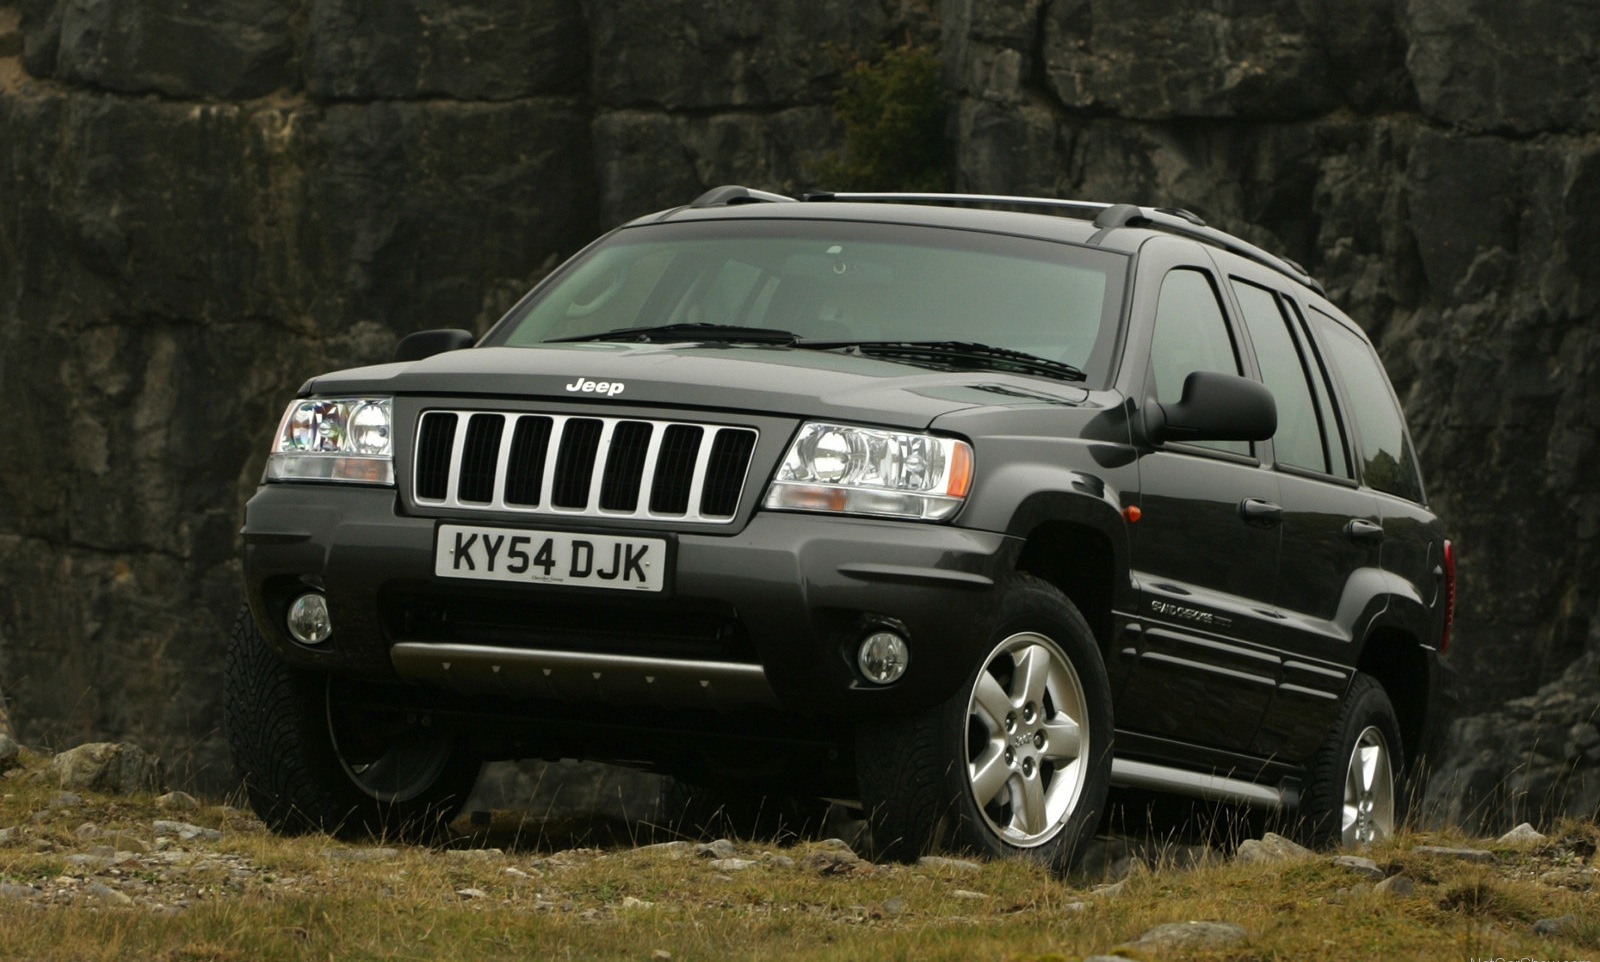 Chrysler Defies Us Safety Recall Of 2 7 Million Jeeps